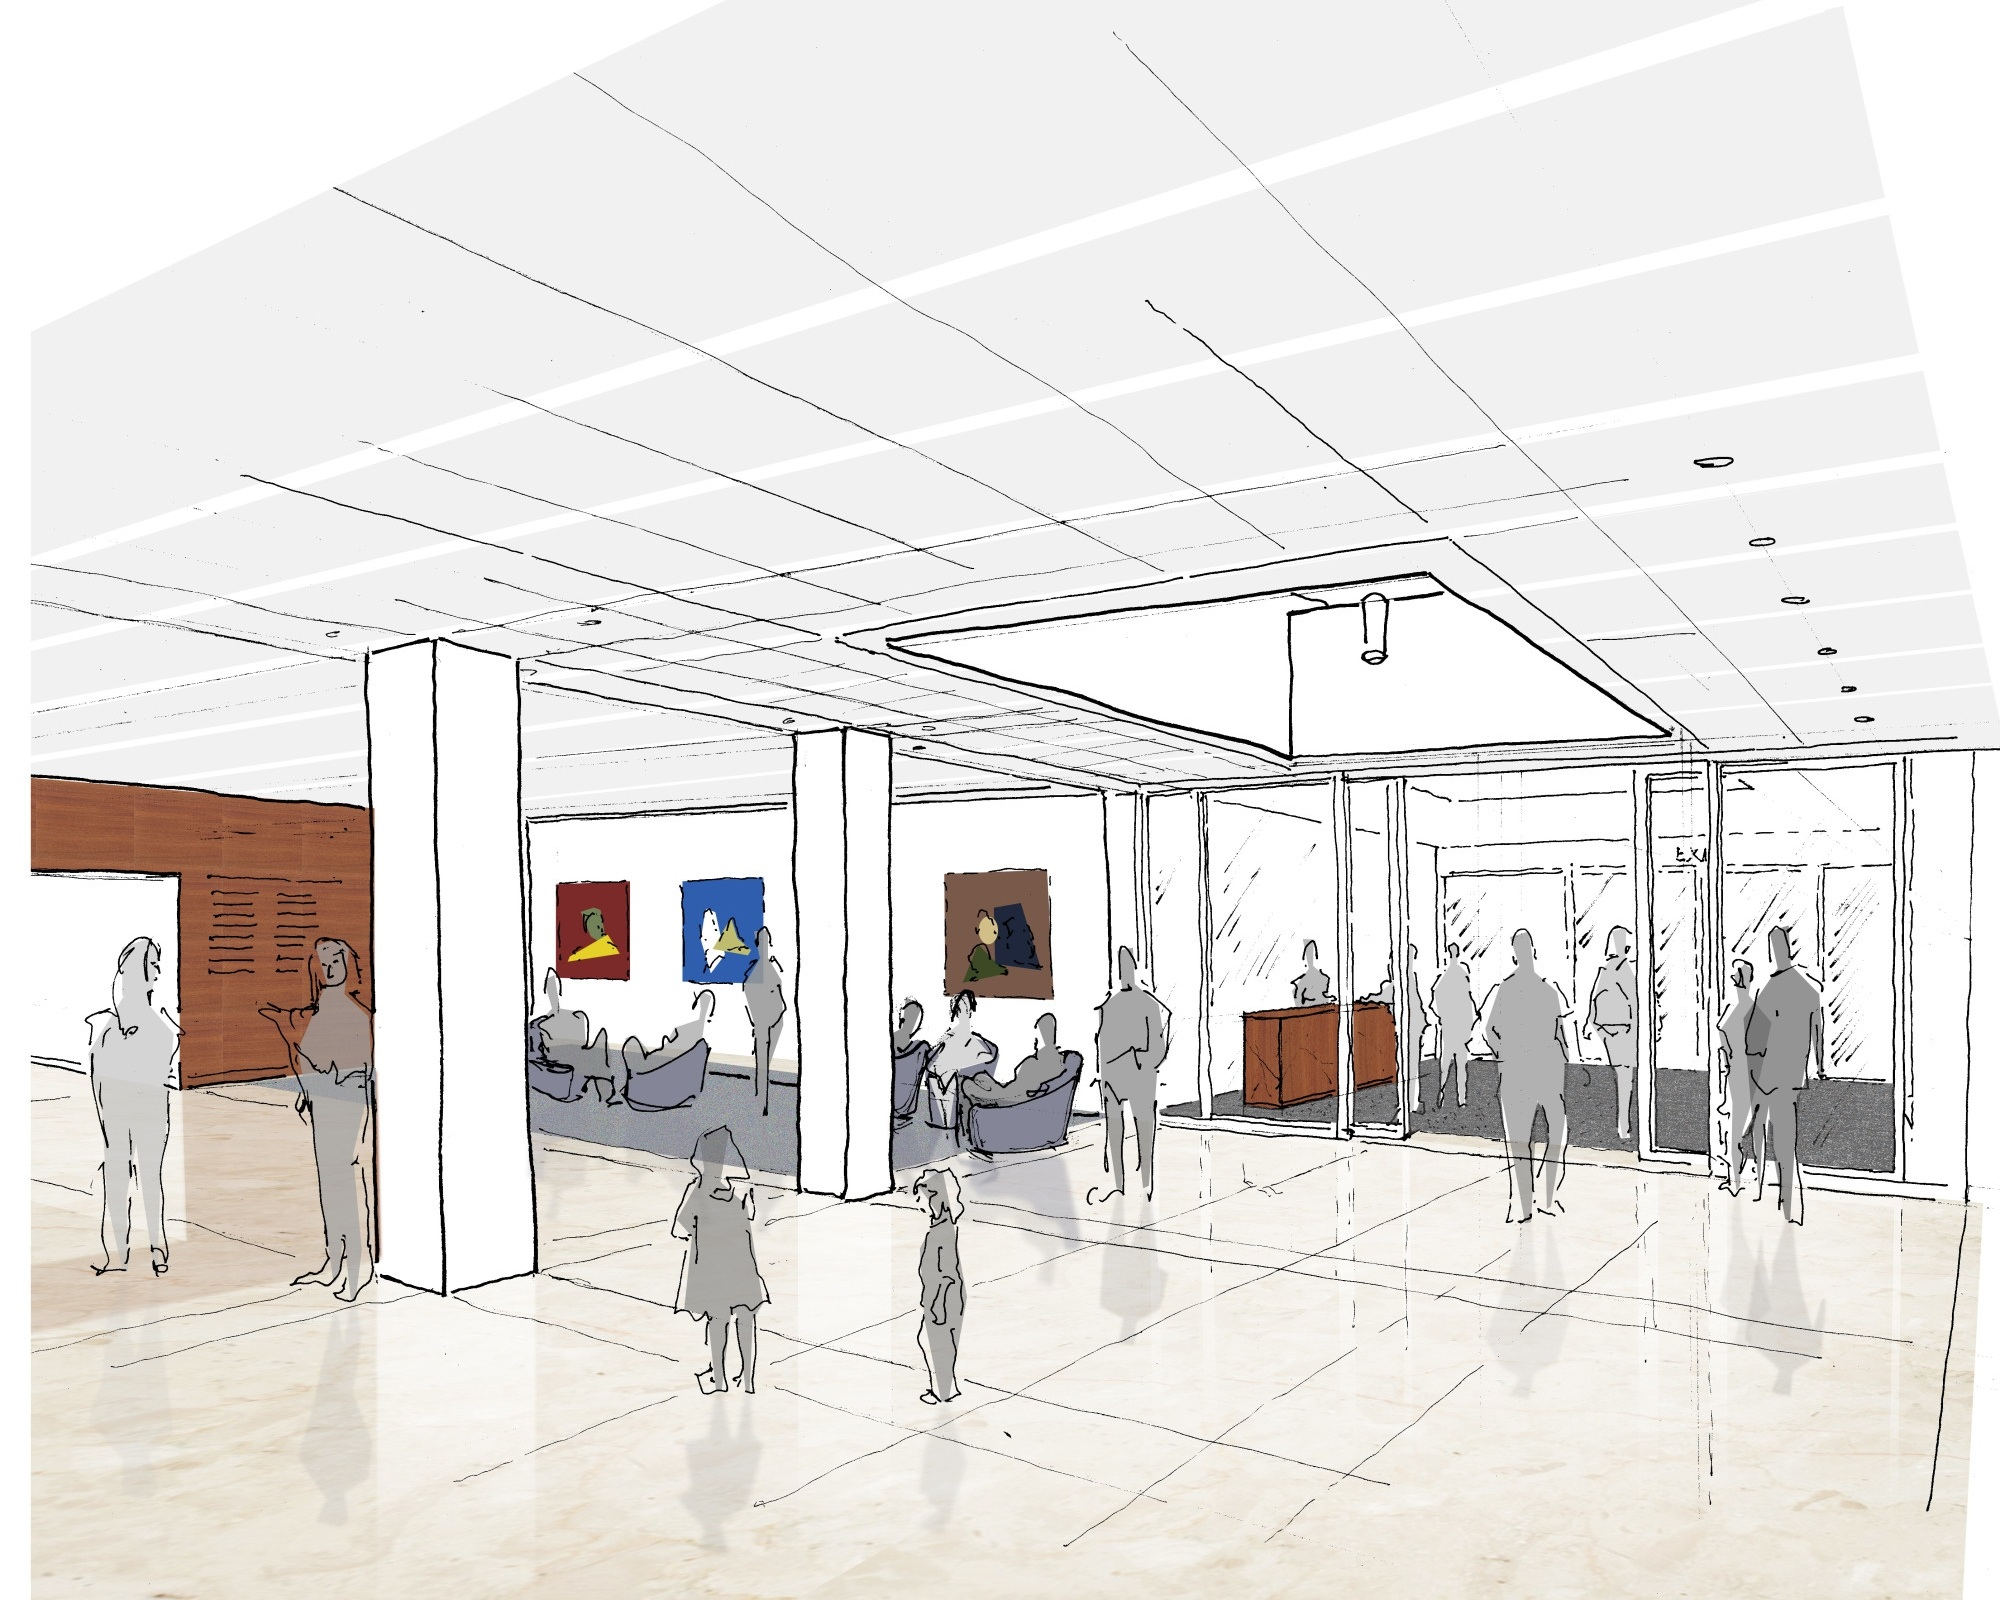 Loci Begins Phase One of the SJJCC in Forest Hills - April 2018Loci starts working on the first phase of implementing the master plan for the Sid Jacobson Jewish Community Center in East Hills, Long Island.